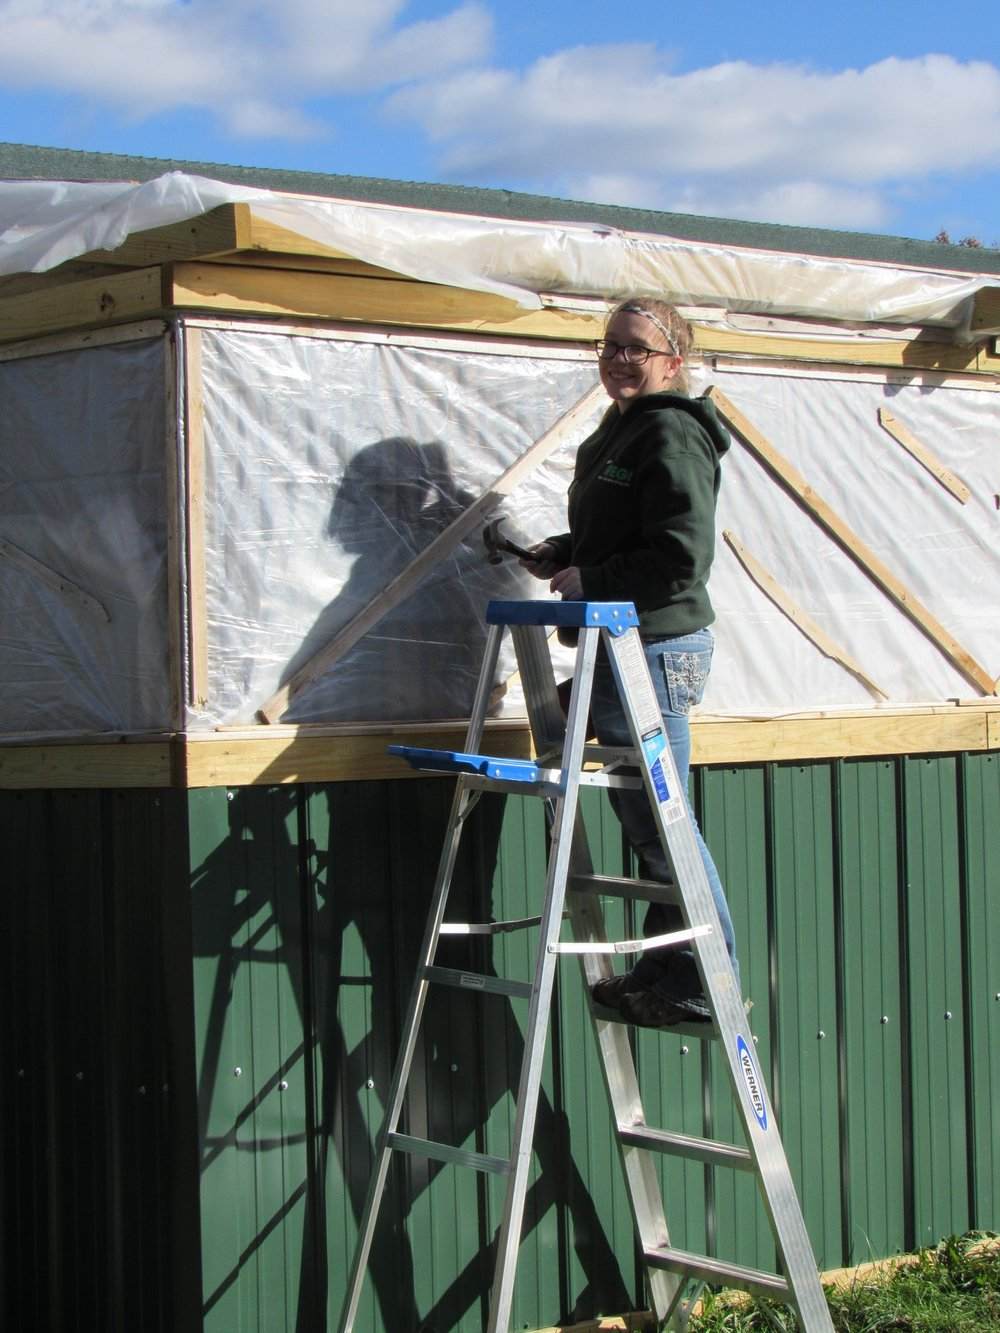 Intern Sarah pounding nails to winterize a new enclosure.